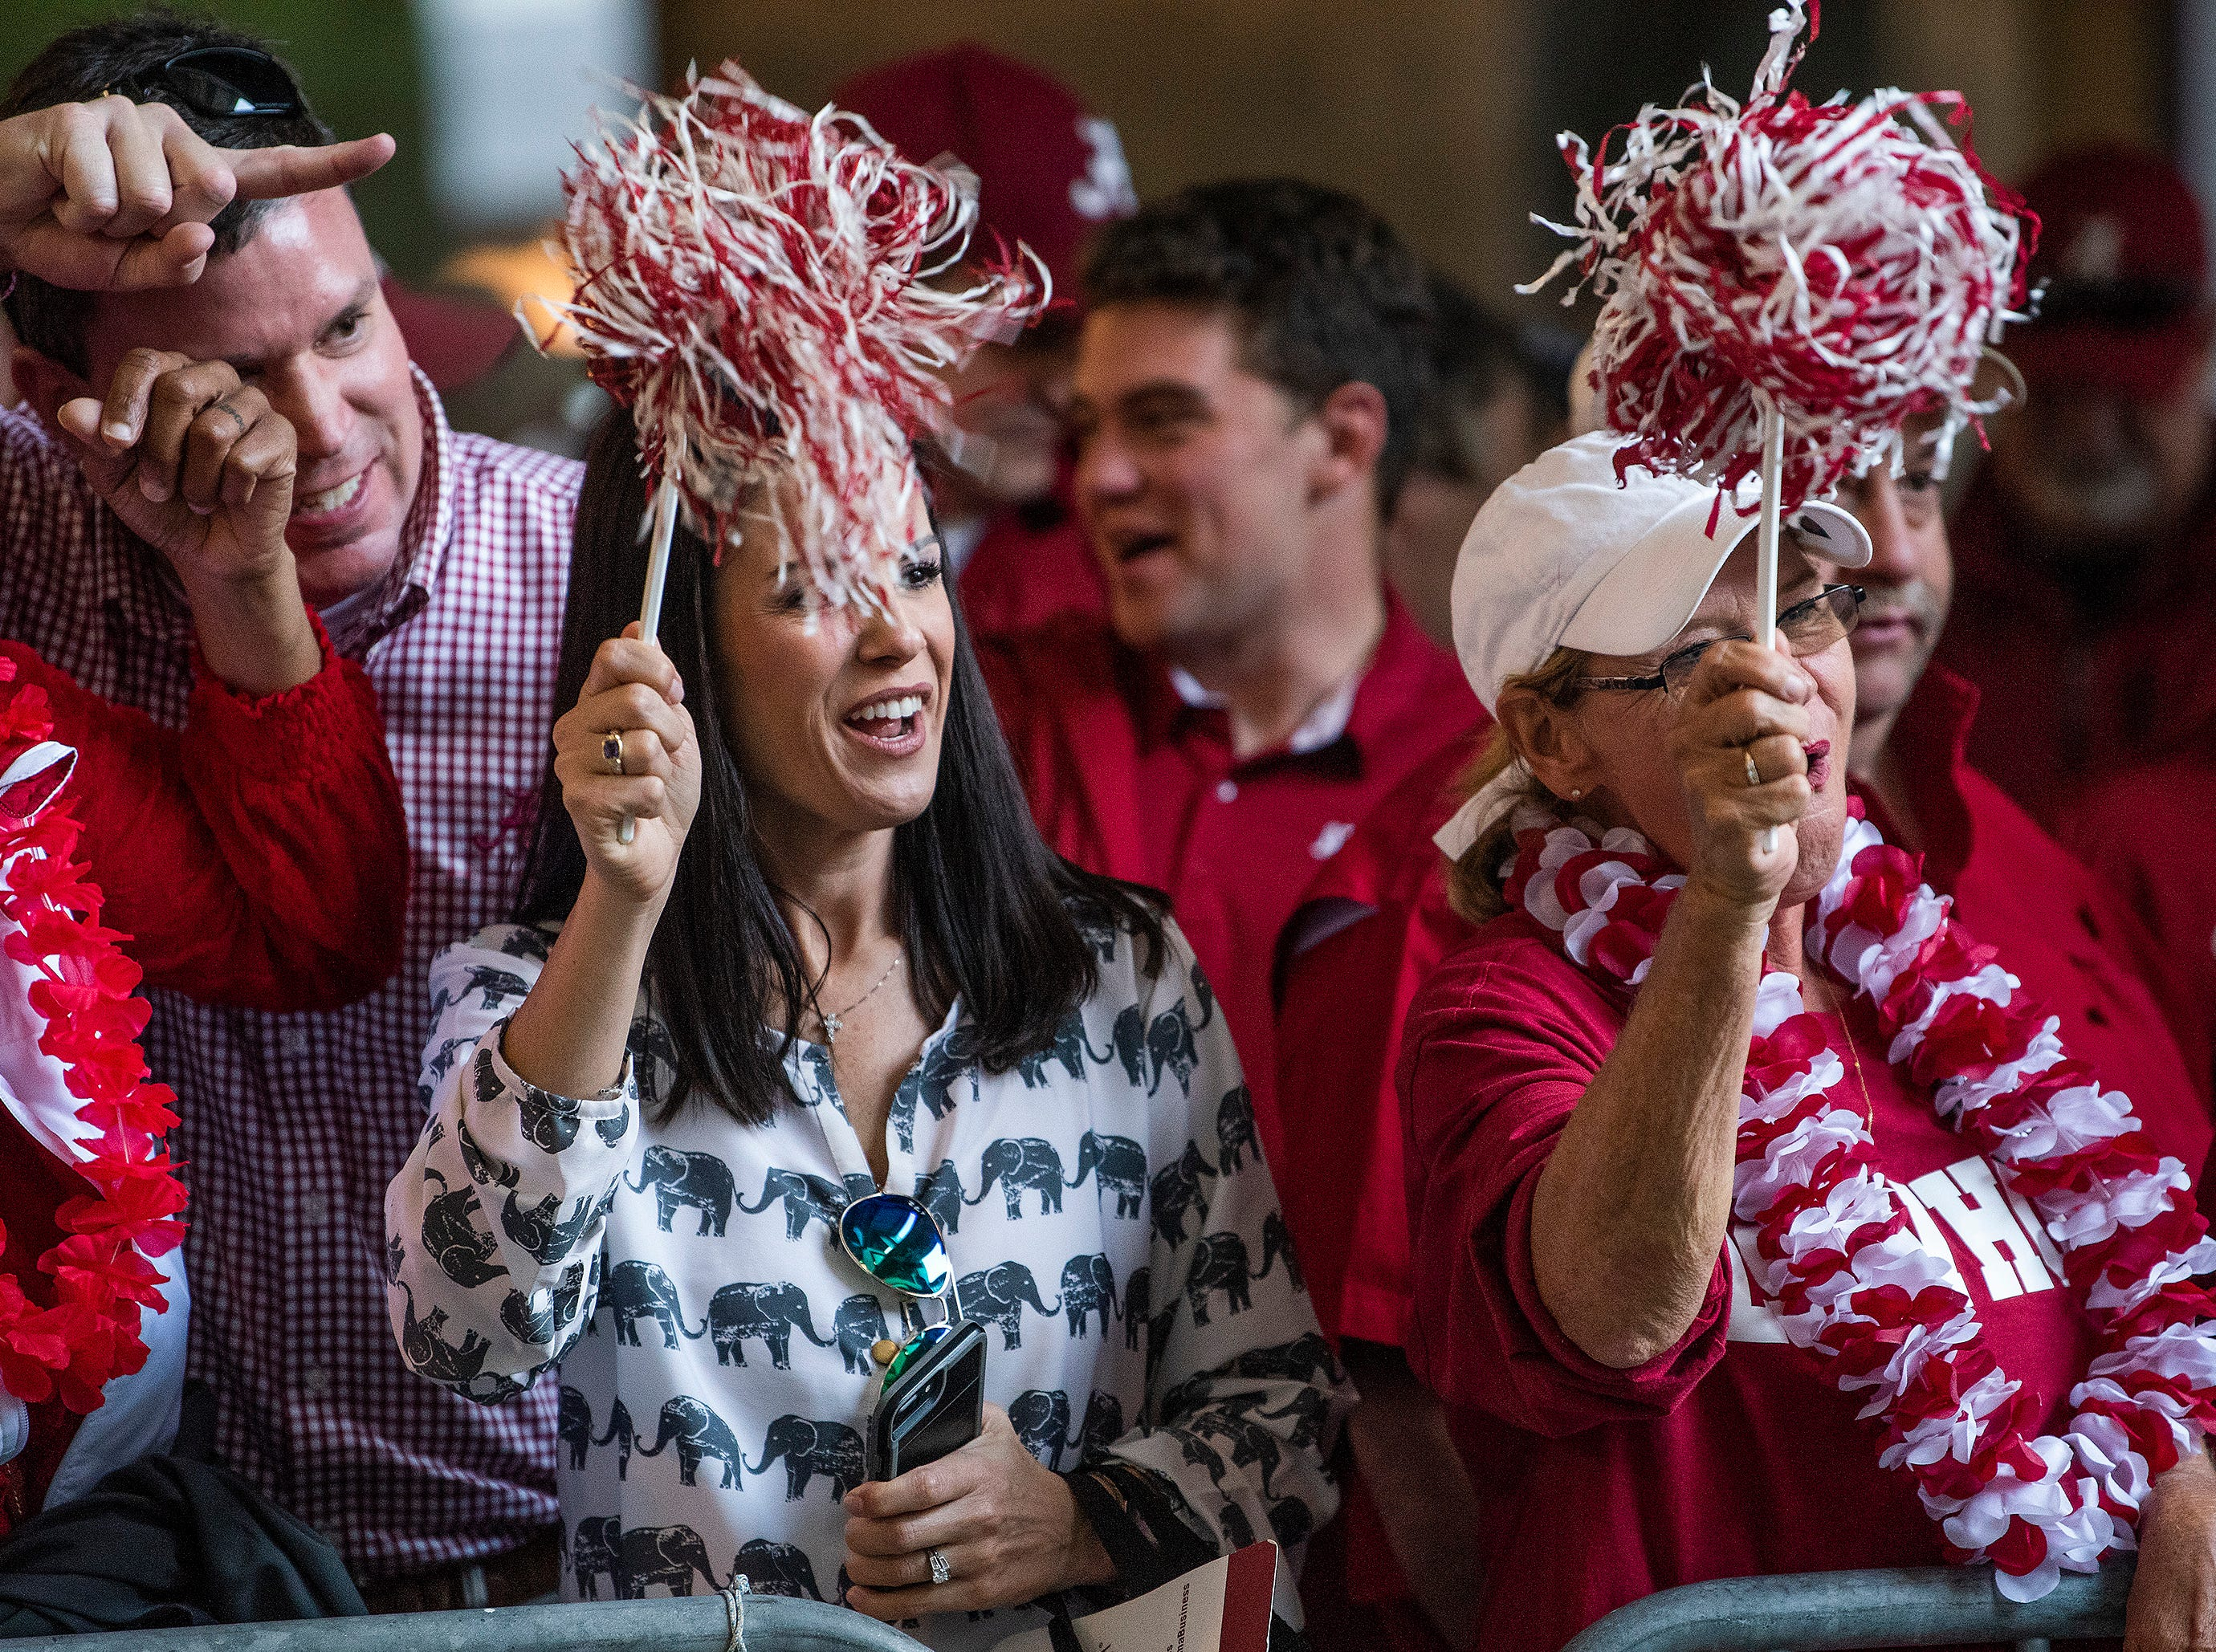 Alabama fans cheer as their team arrives before the Alabama vs. Louisiana State football game at Tiger Stadium in Baton Rouge, La., on Saturday November 3, 2018.